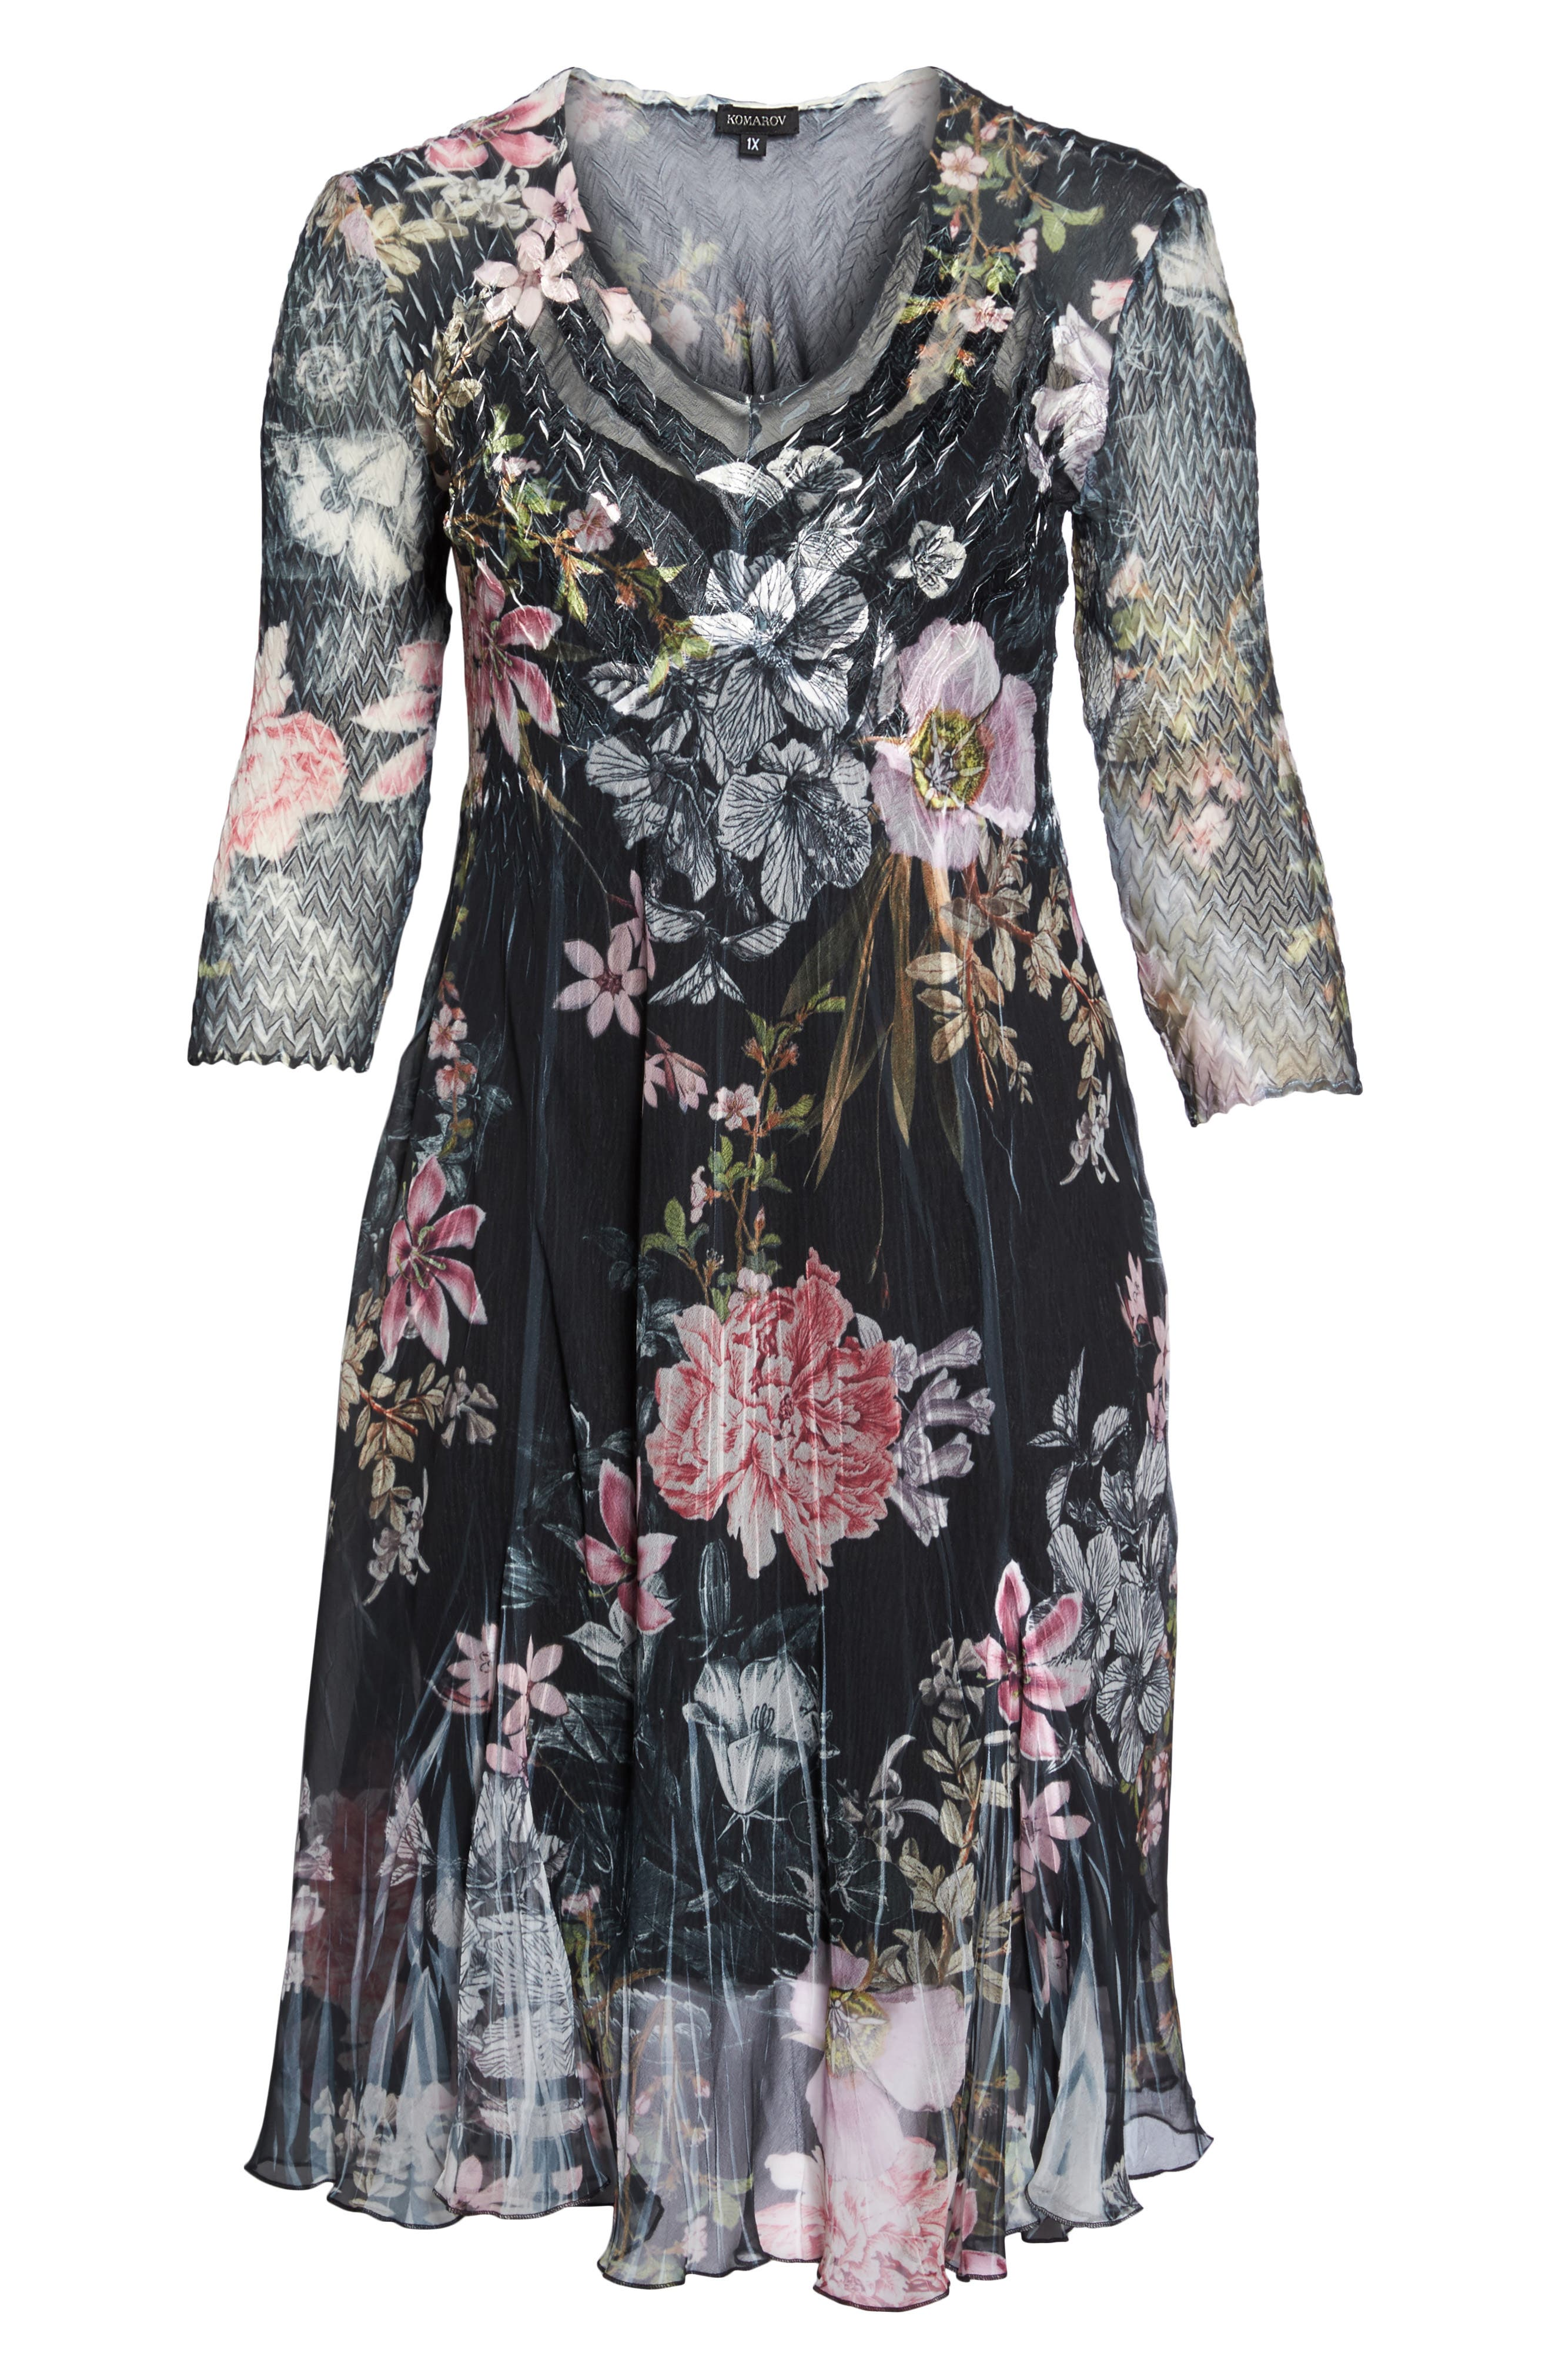 Kamarov Floral Charmeuse & Chiffon Floral A-Line Dress,                             Alternate thumbnail 7, color,                             Moon Flower